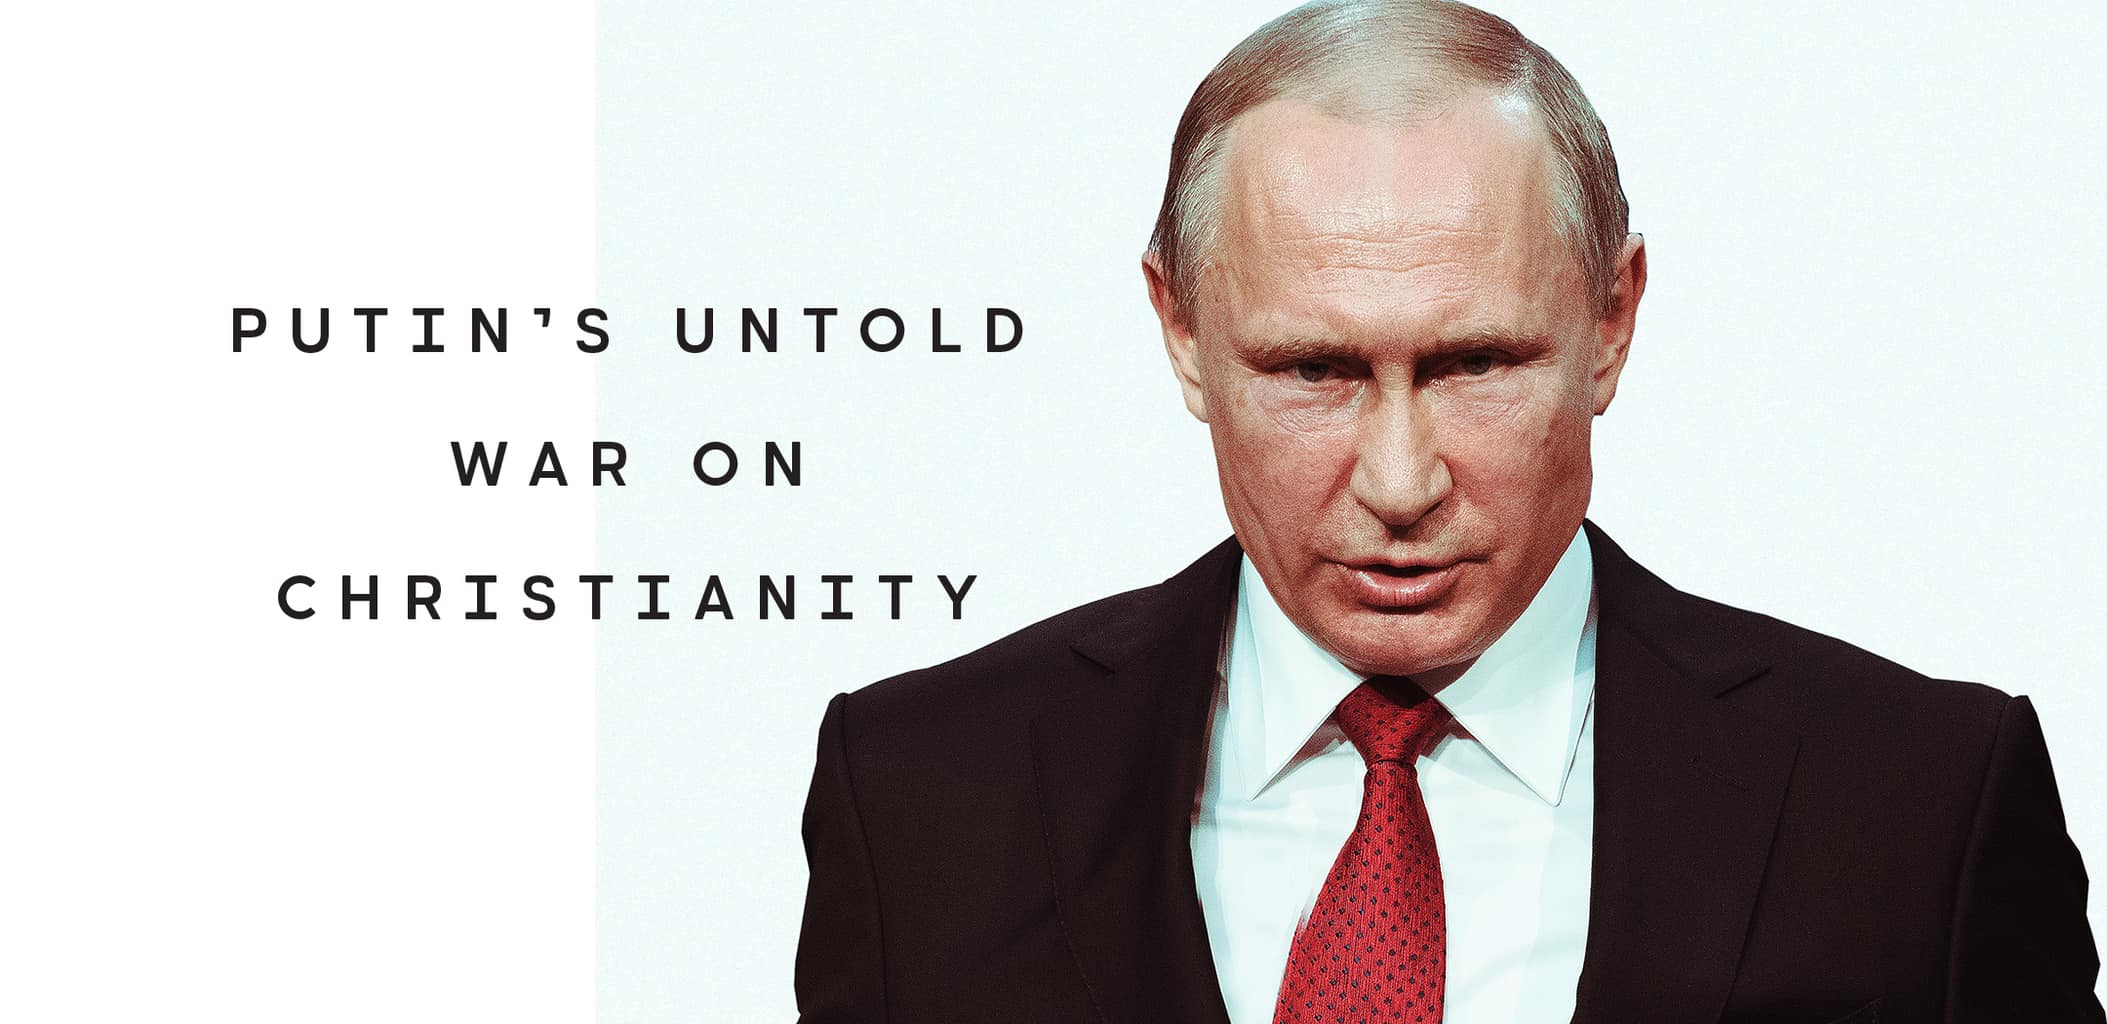 Putin S Untold War On Christianity Relevant